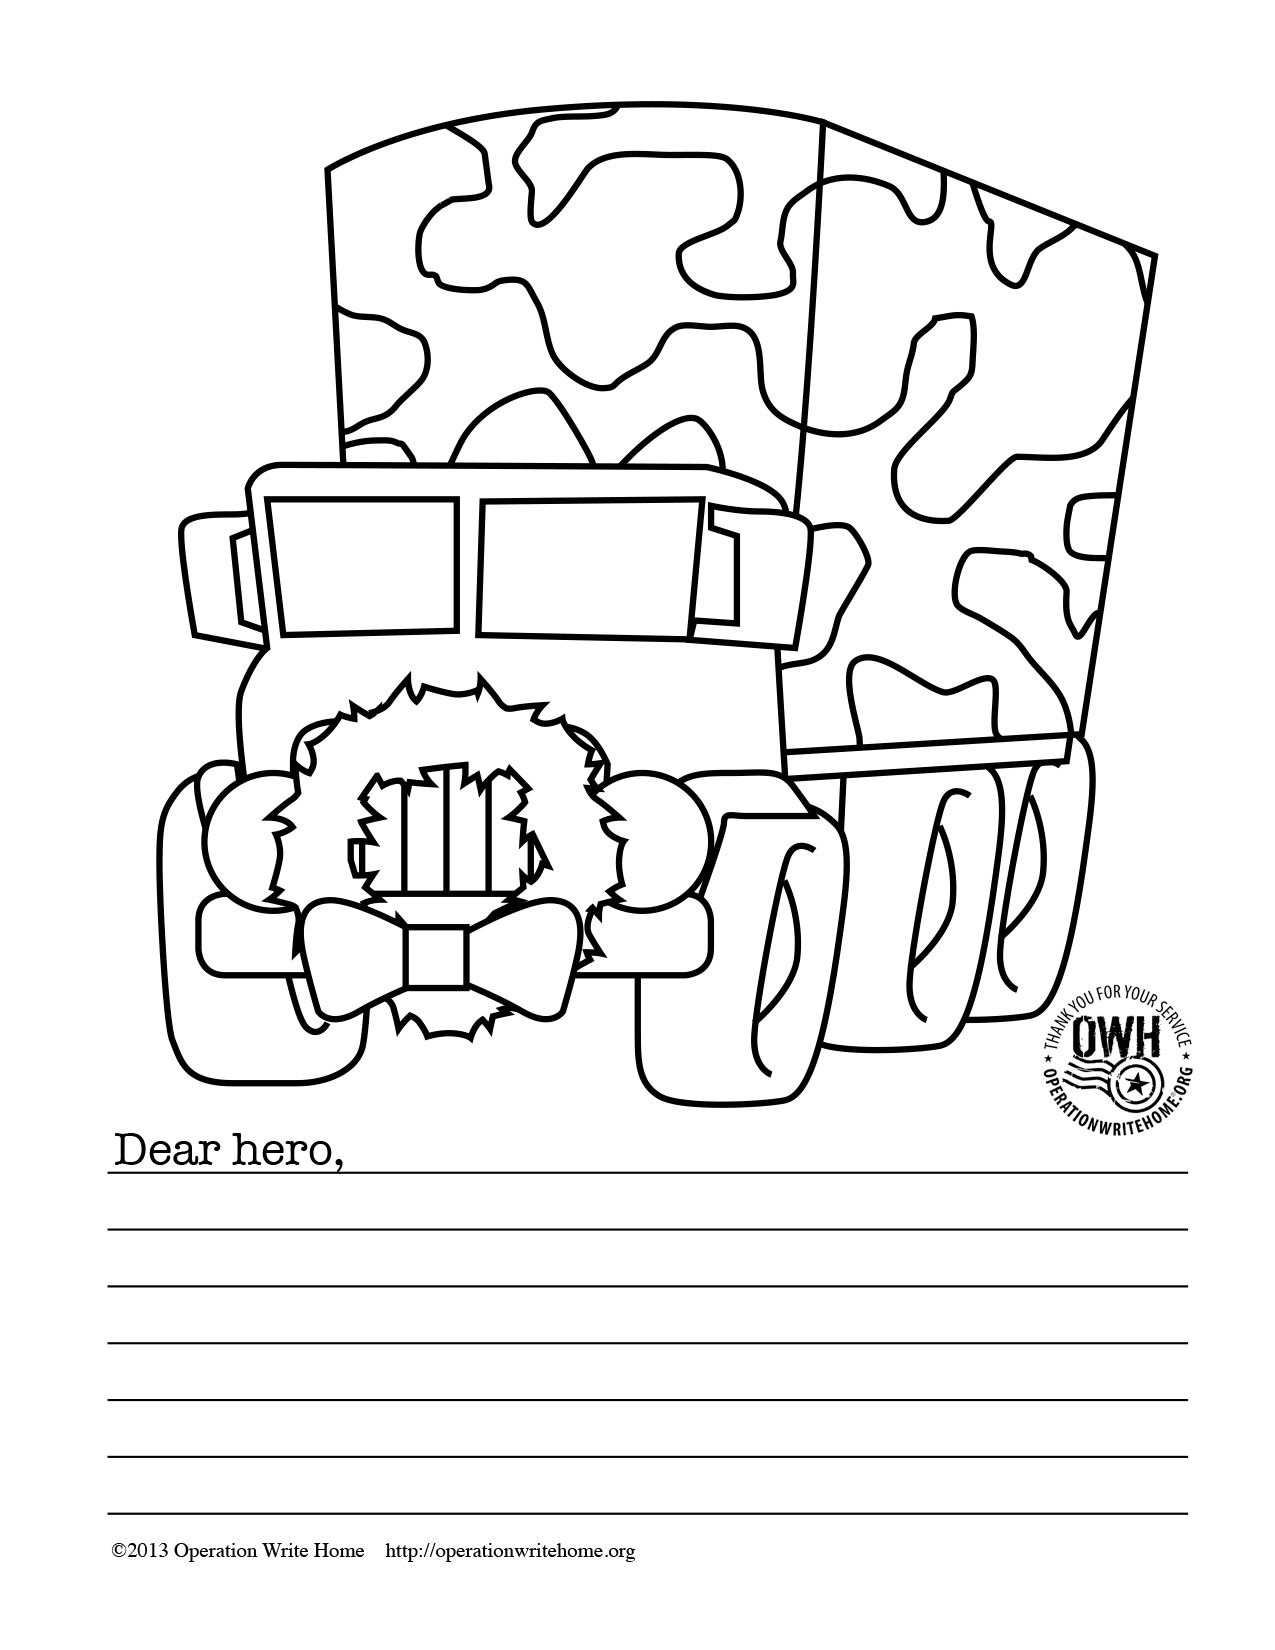 Christmas Coloring Cards With FREE Military Pages For Operation Write Home